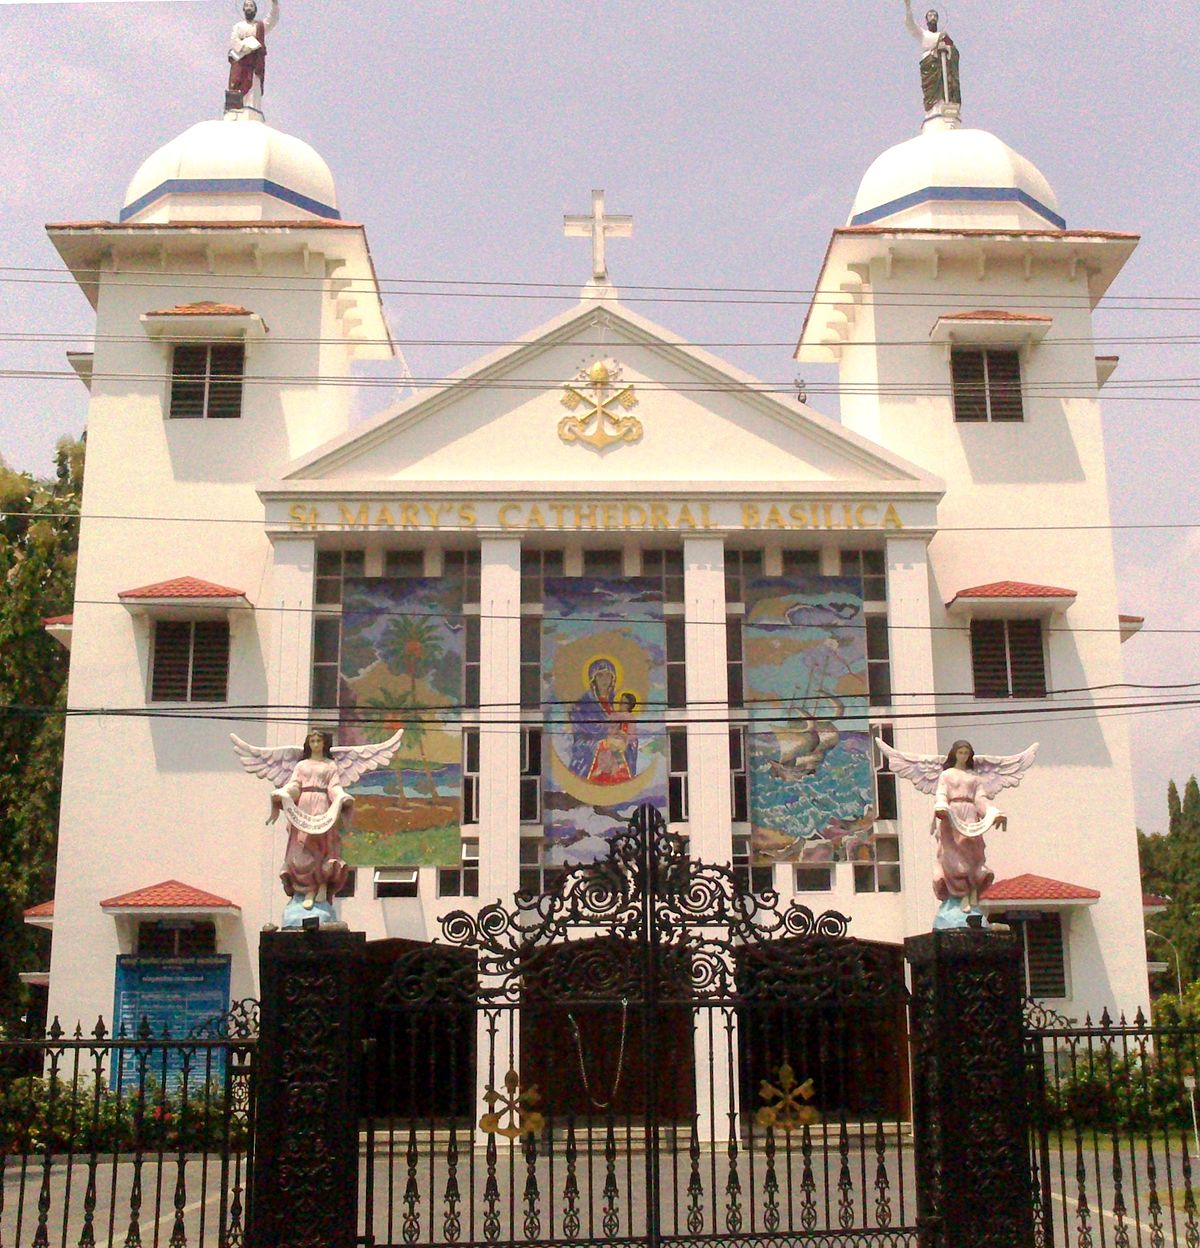 Syro-Orthodox Church of Sts. Mary in the city of Worcester, USA